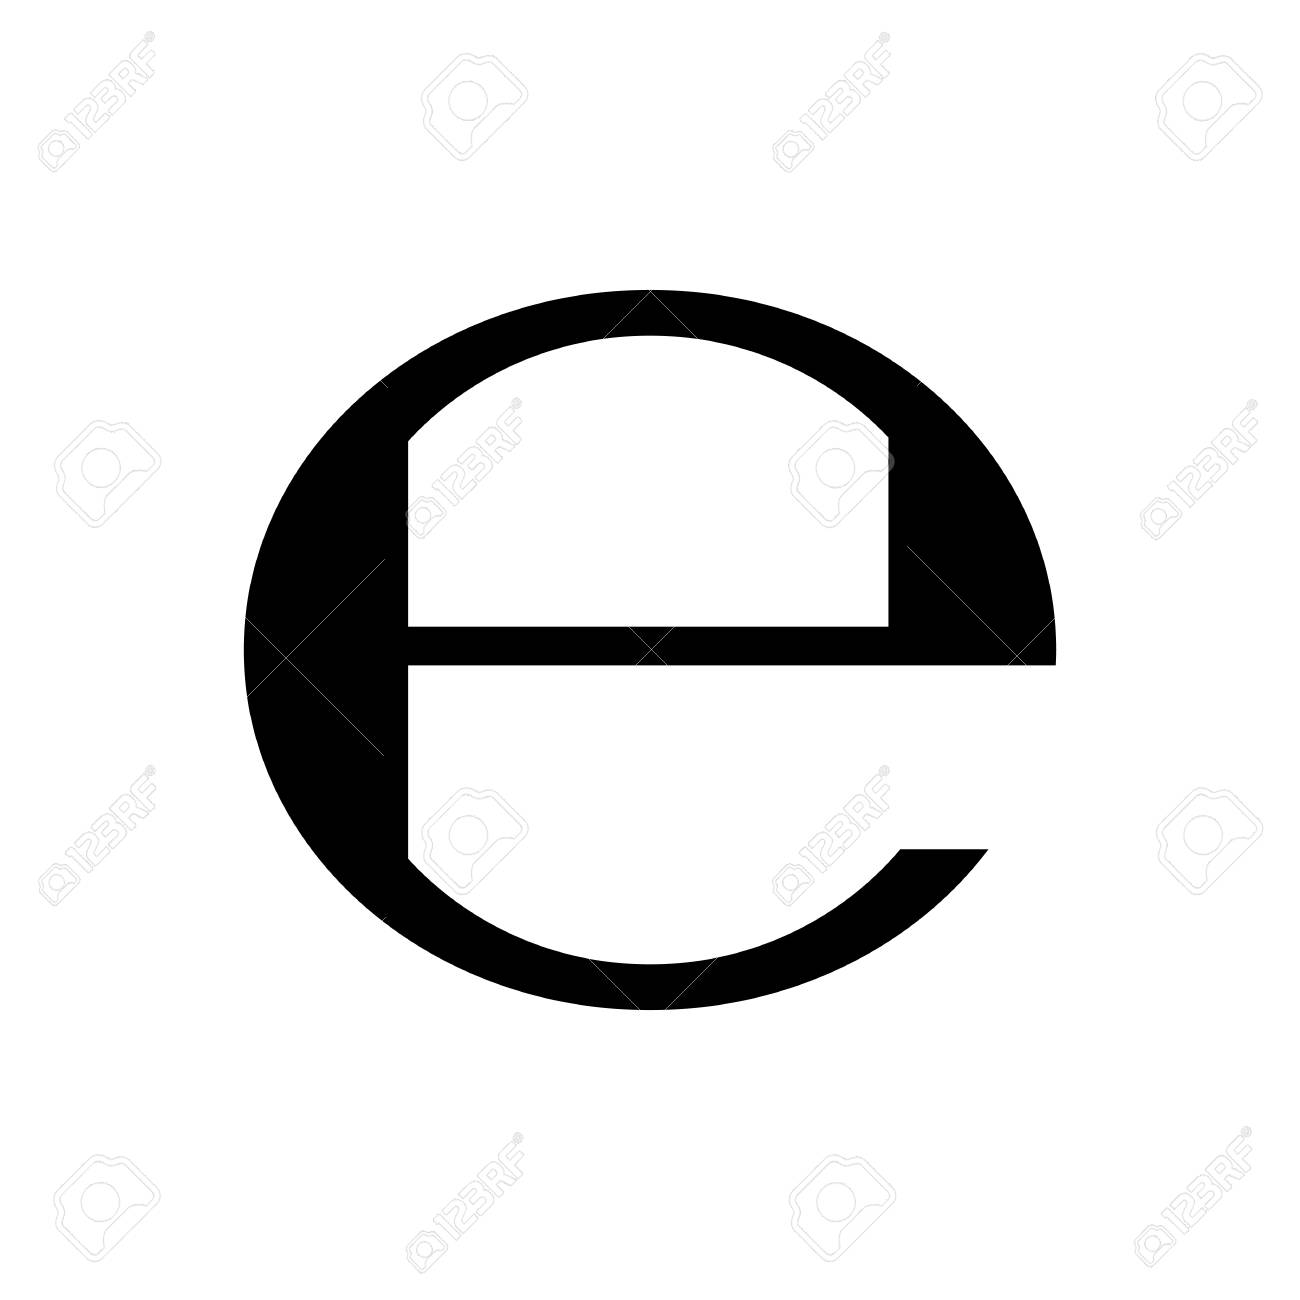 Estimated Sign Packaging E Symbol Vector Illustration Royalty Free